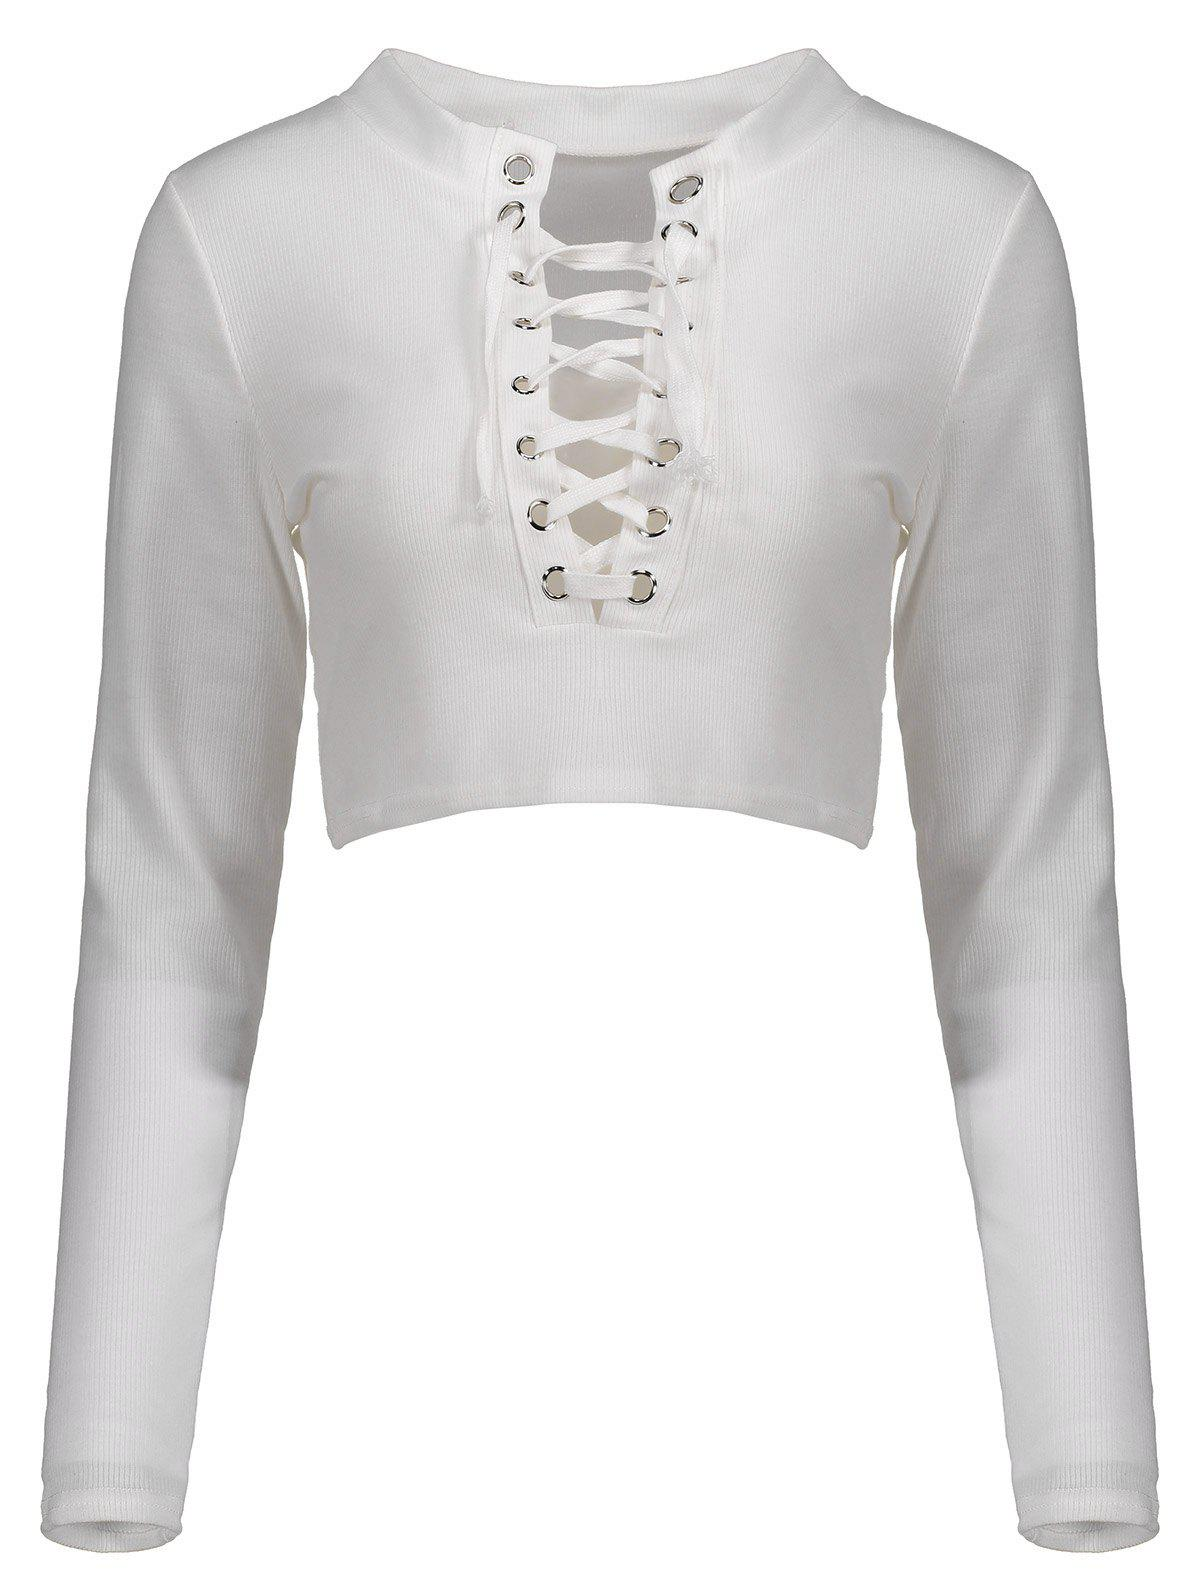 Lace Up Long Sleeves Crop Top - WHITE S